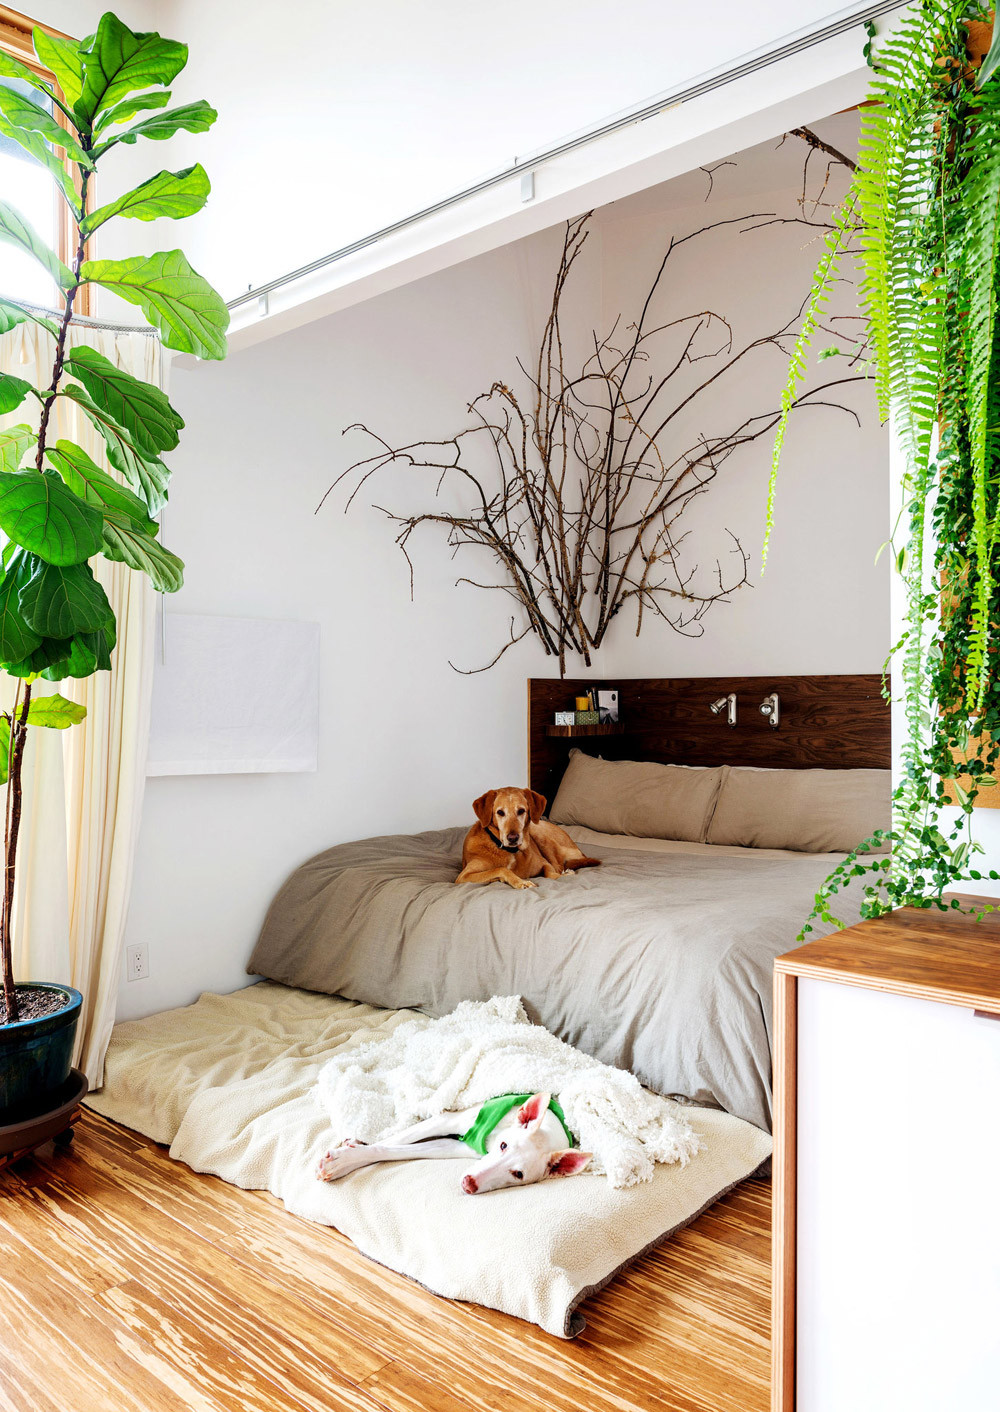 Small Bedroom Plants  Design Highlight Bedrooms Using Live Plants as Decor